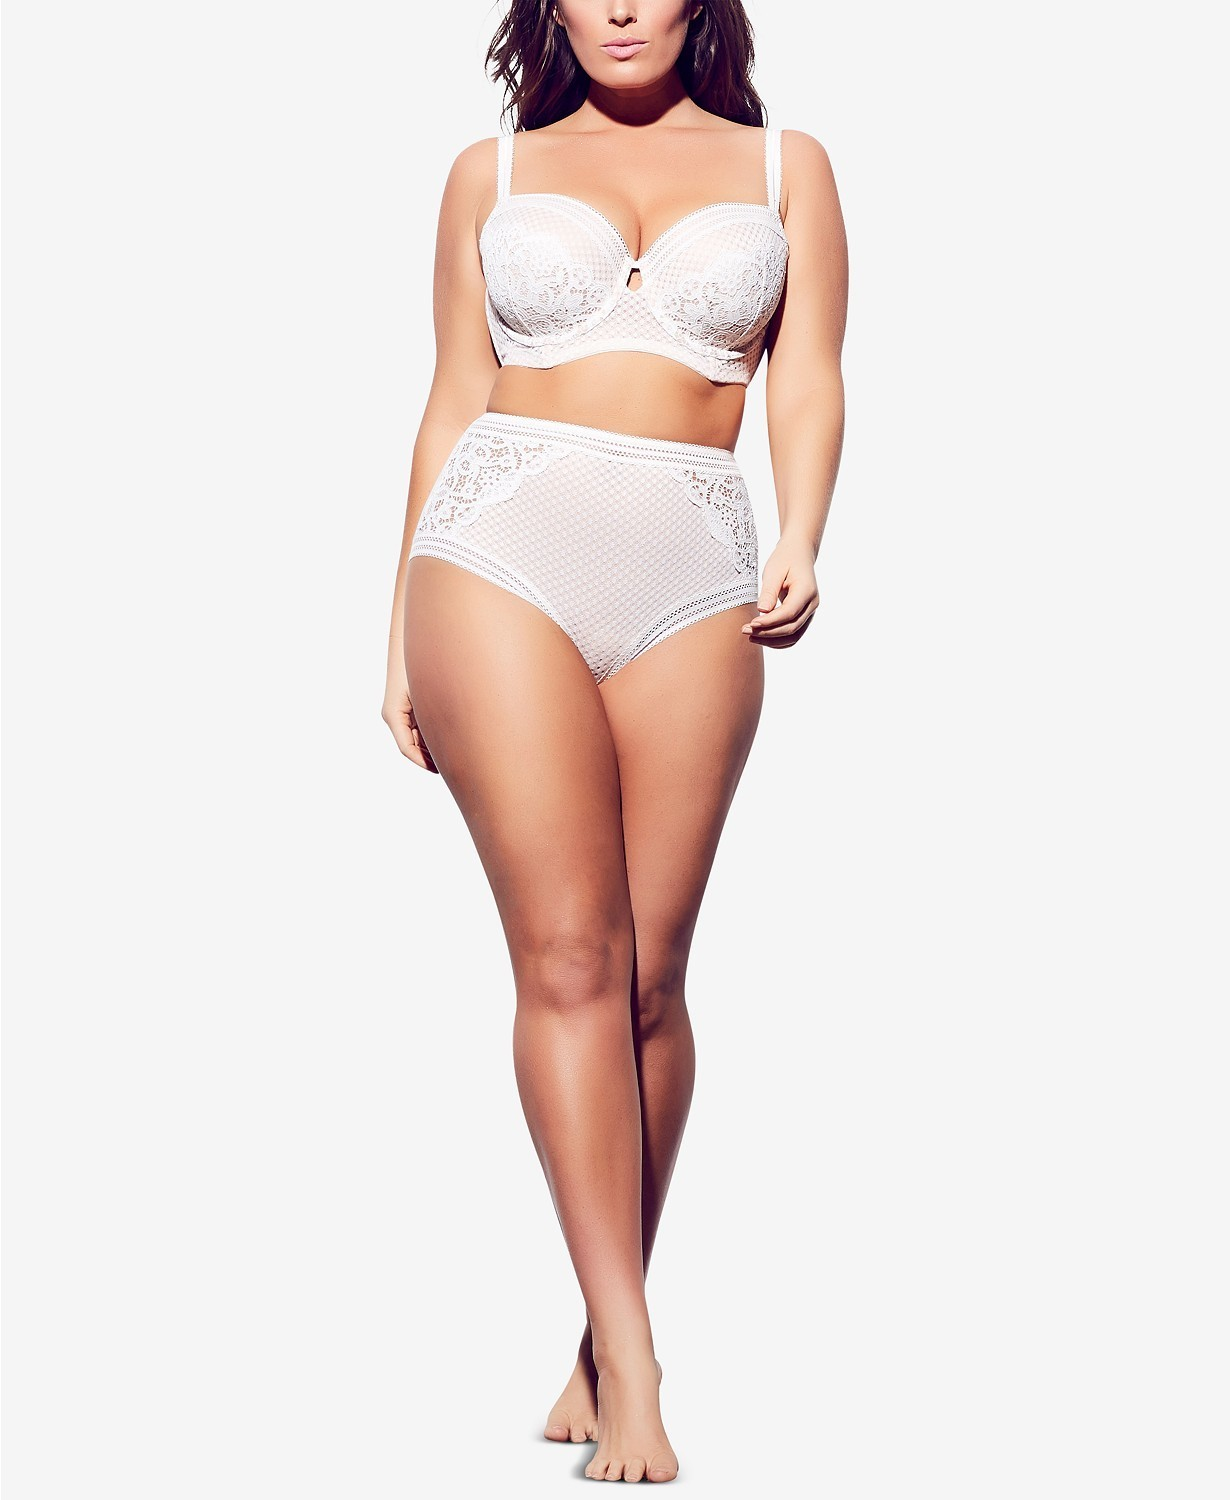 Plus Size Lingerie: The Best Baby Dolls, Teddys, Bras, And Bustiers For 2019